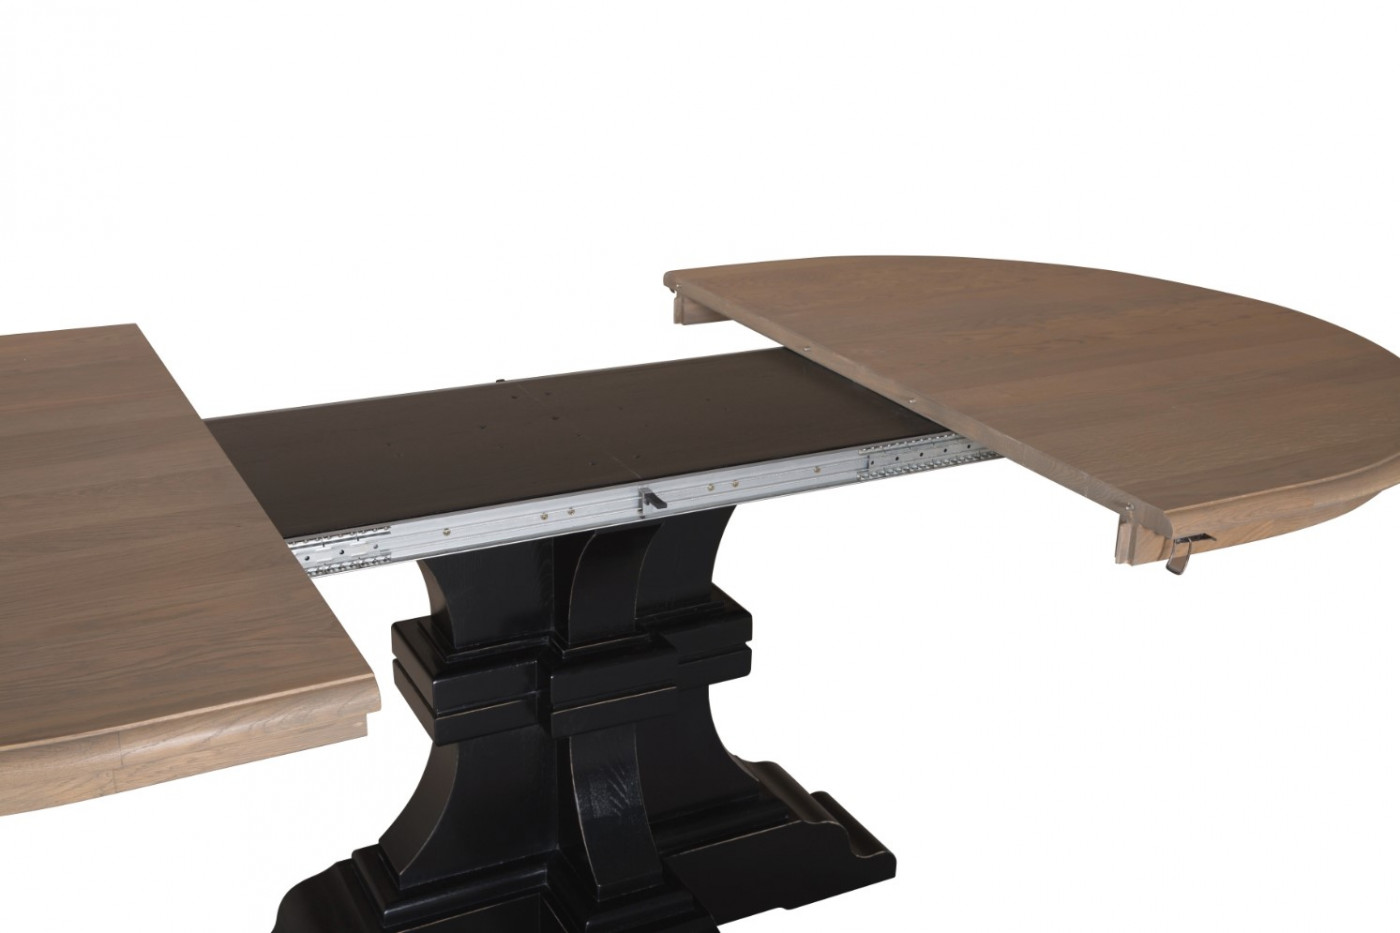 TABLE BERNADETTE XL TREND